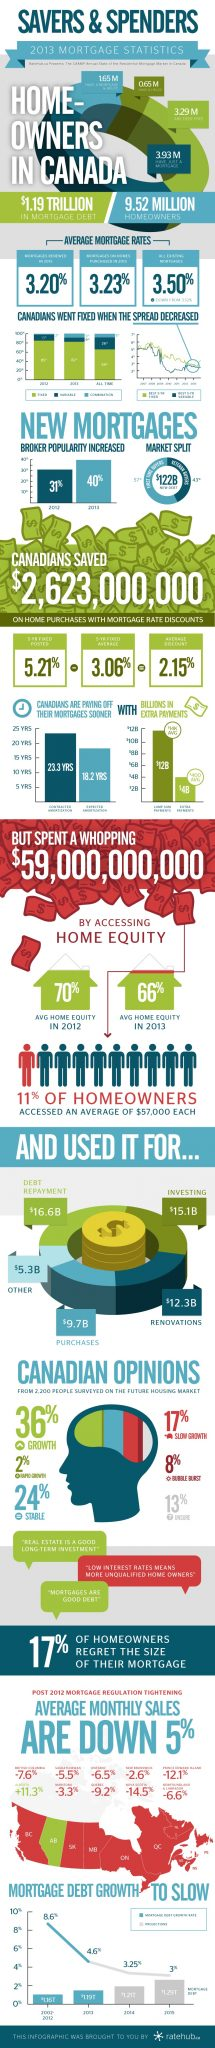 2013 Mortgage Trends